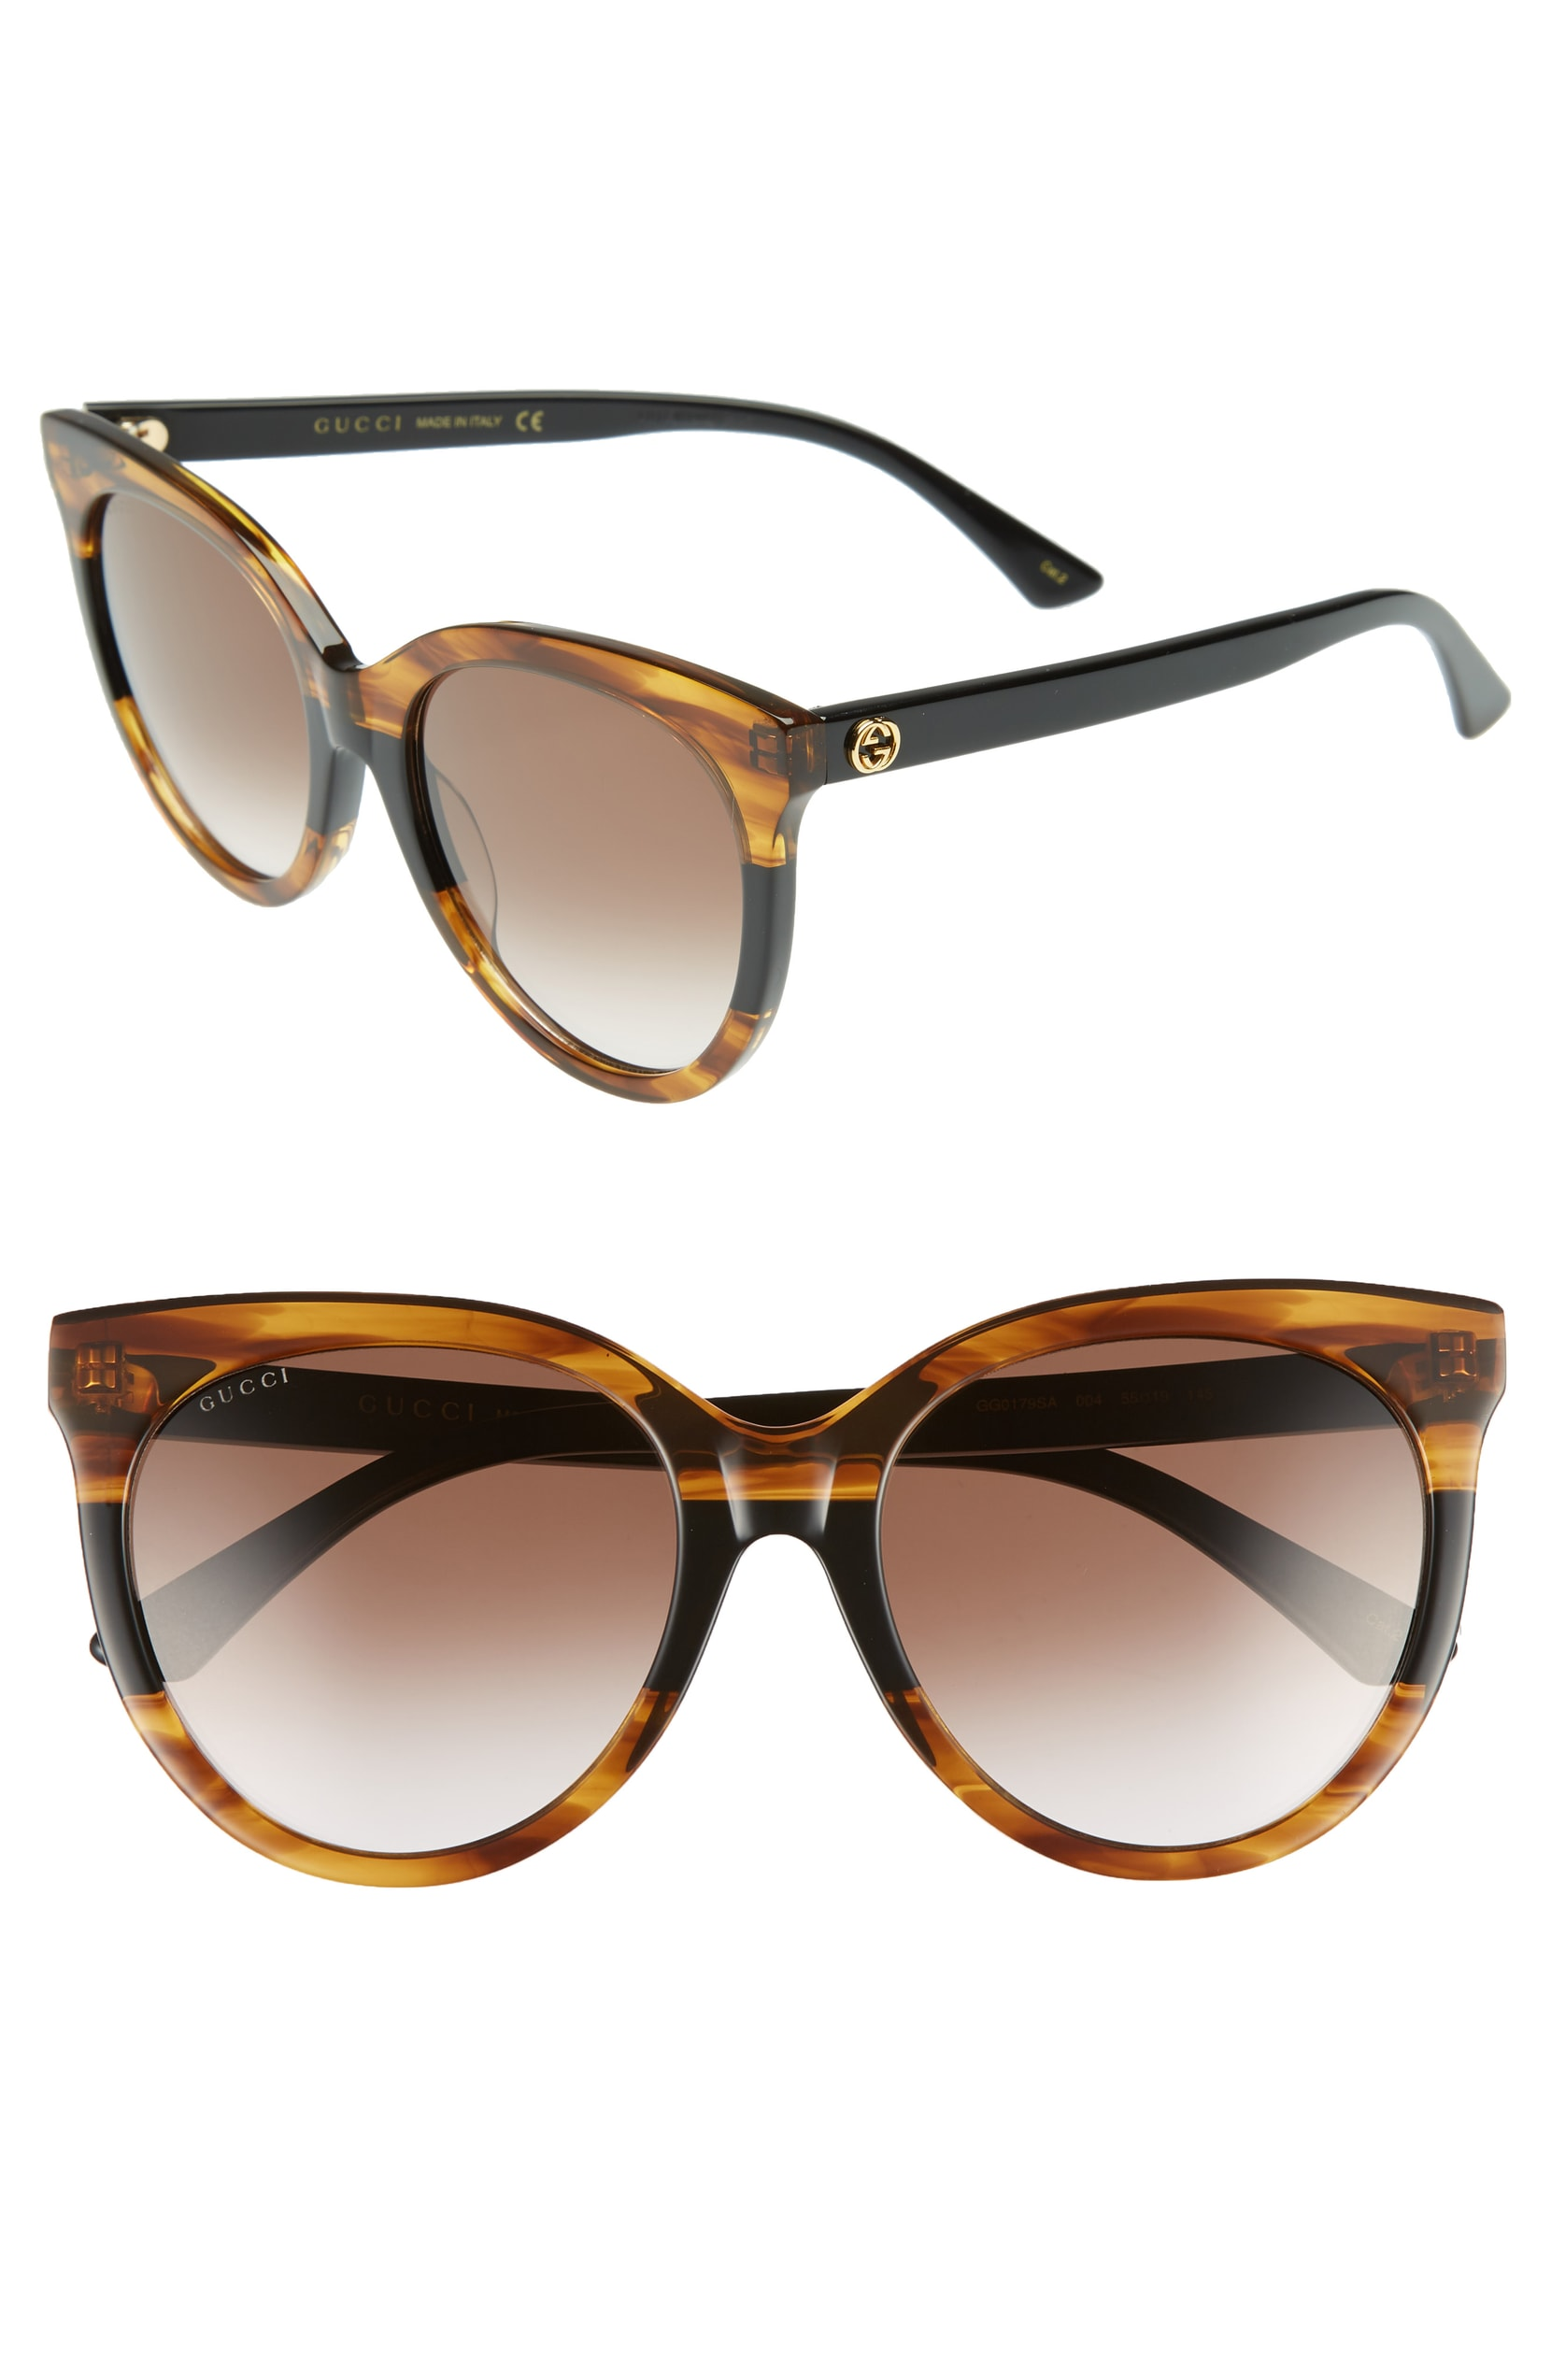 Gucci Round Sunglasses. Sale: $267.90 / After Sale: $400.00. (Image: Nordstrom){ }